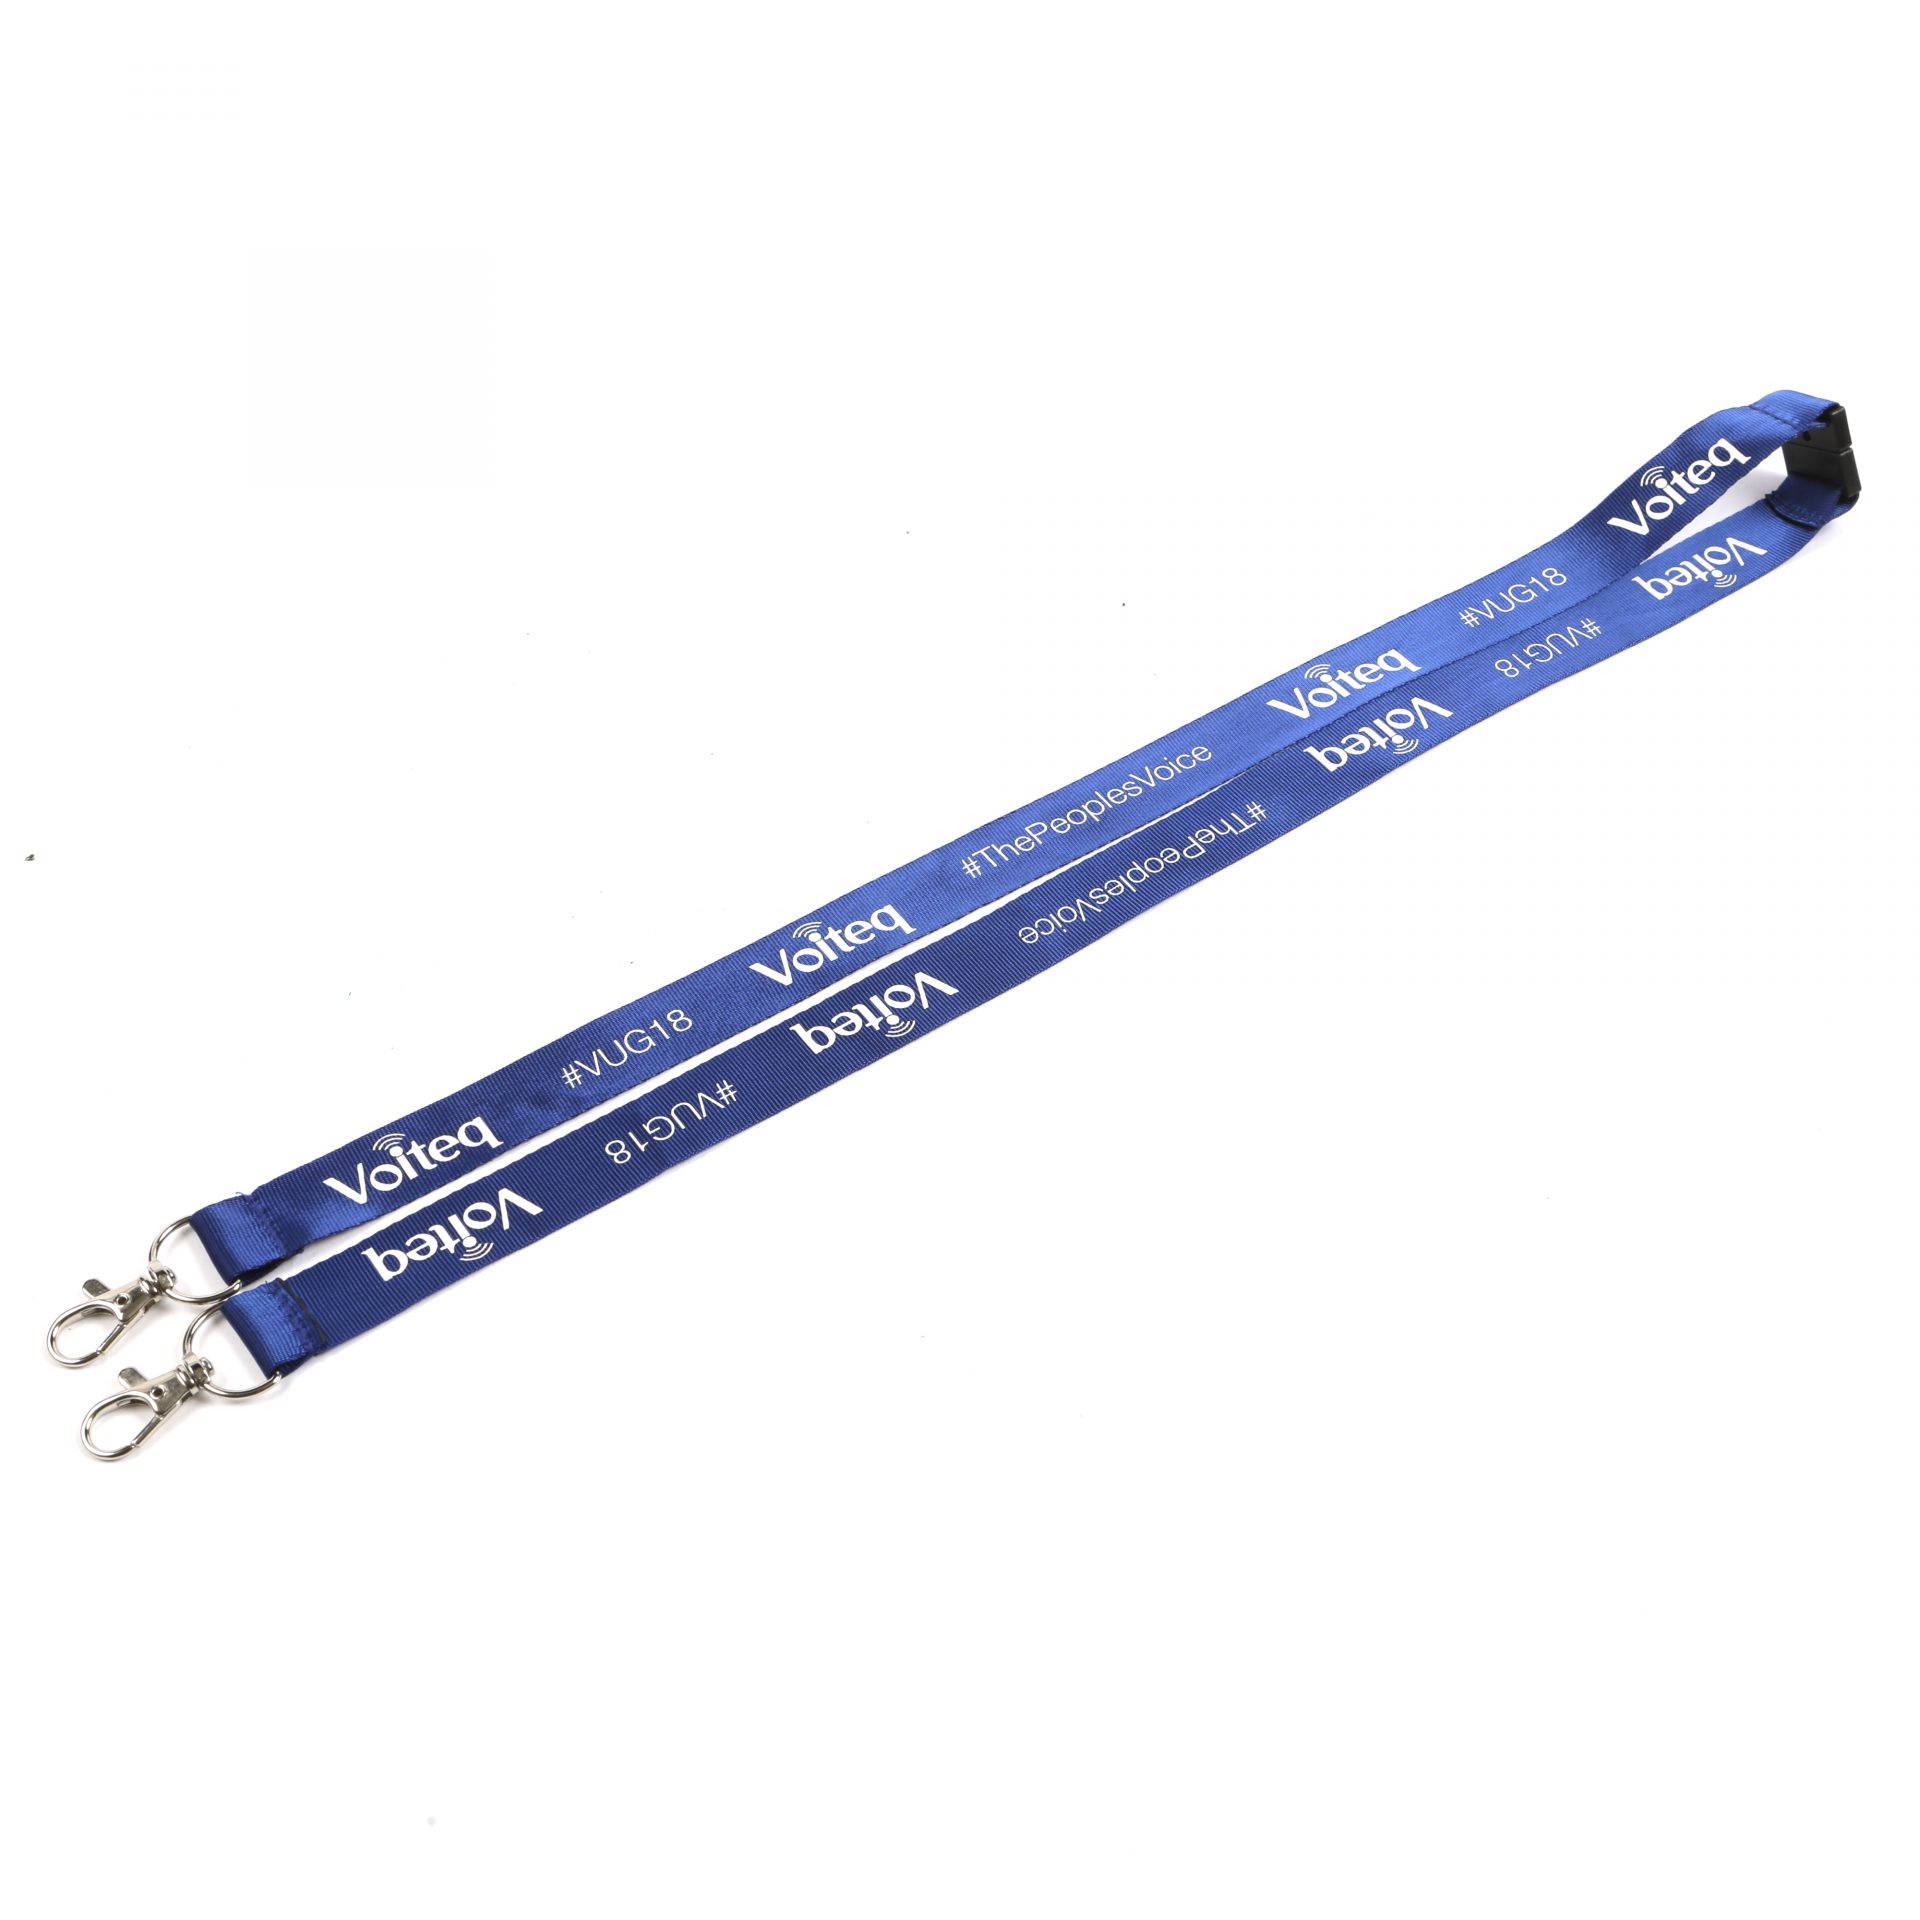 Buy Premium Nylon Lanyards on Lanyards Direct Today!